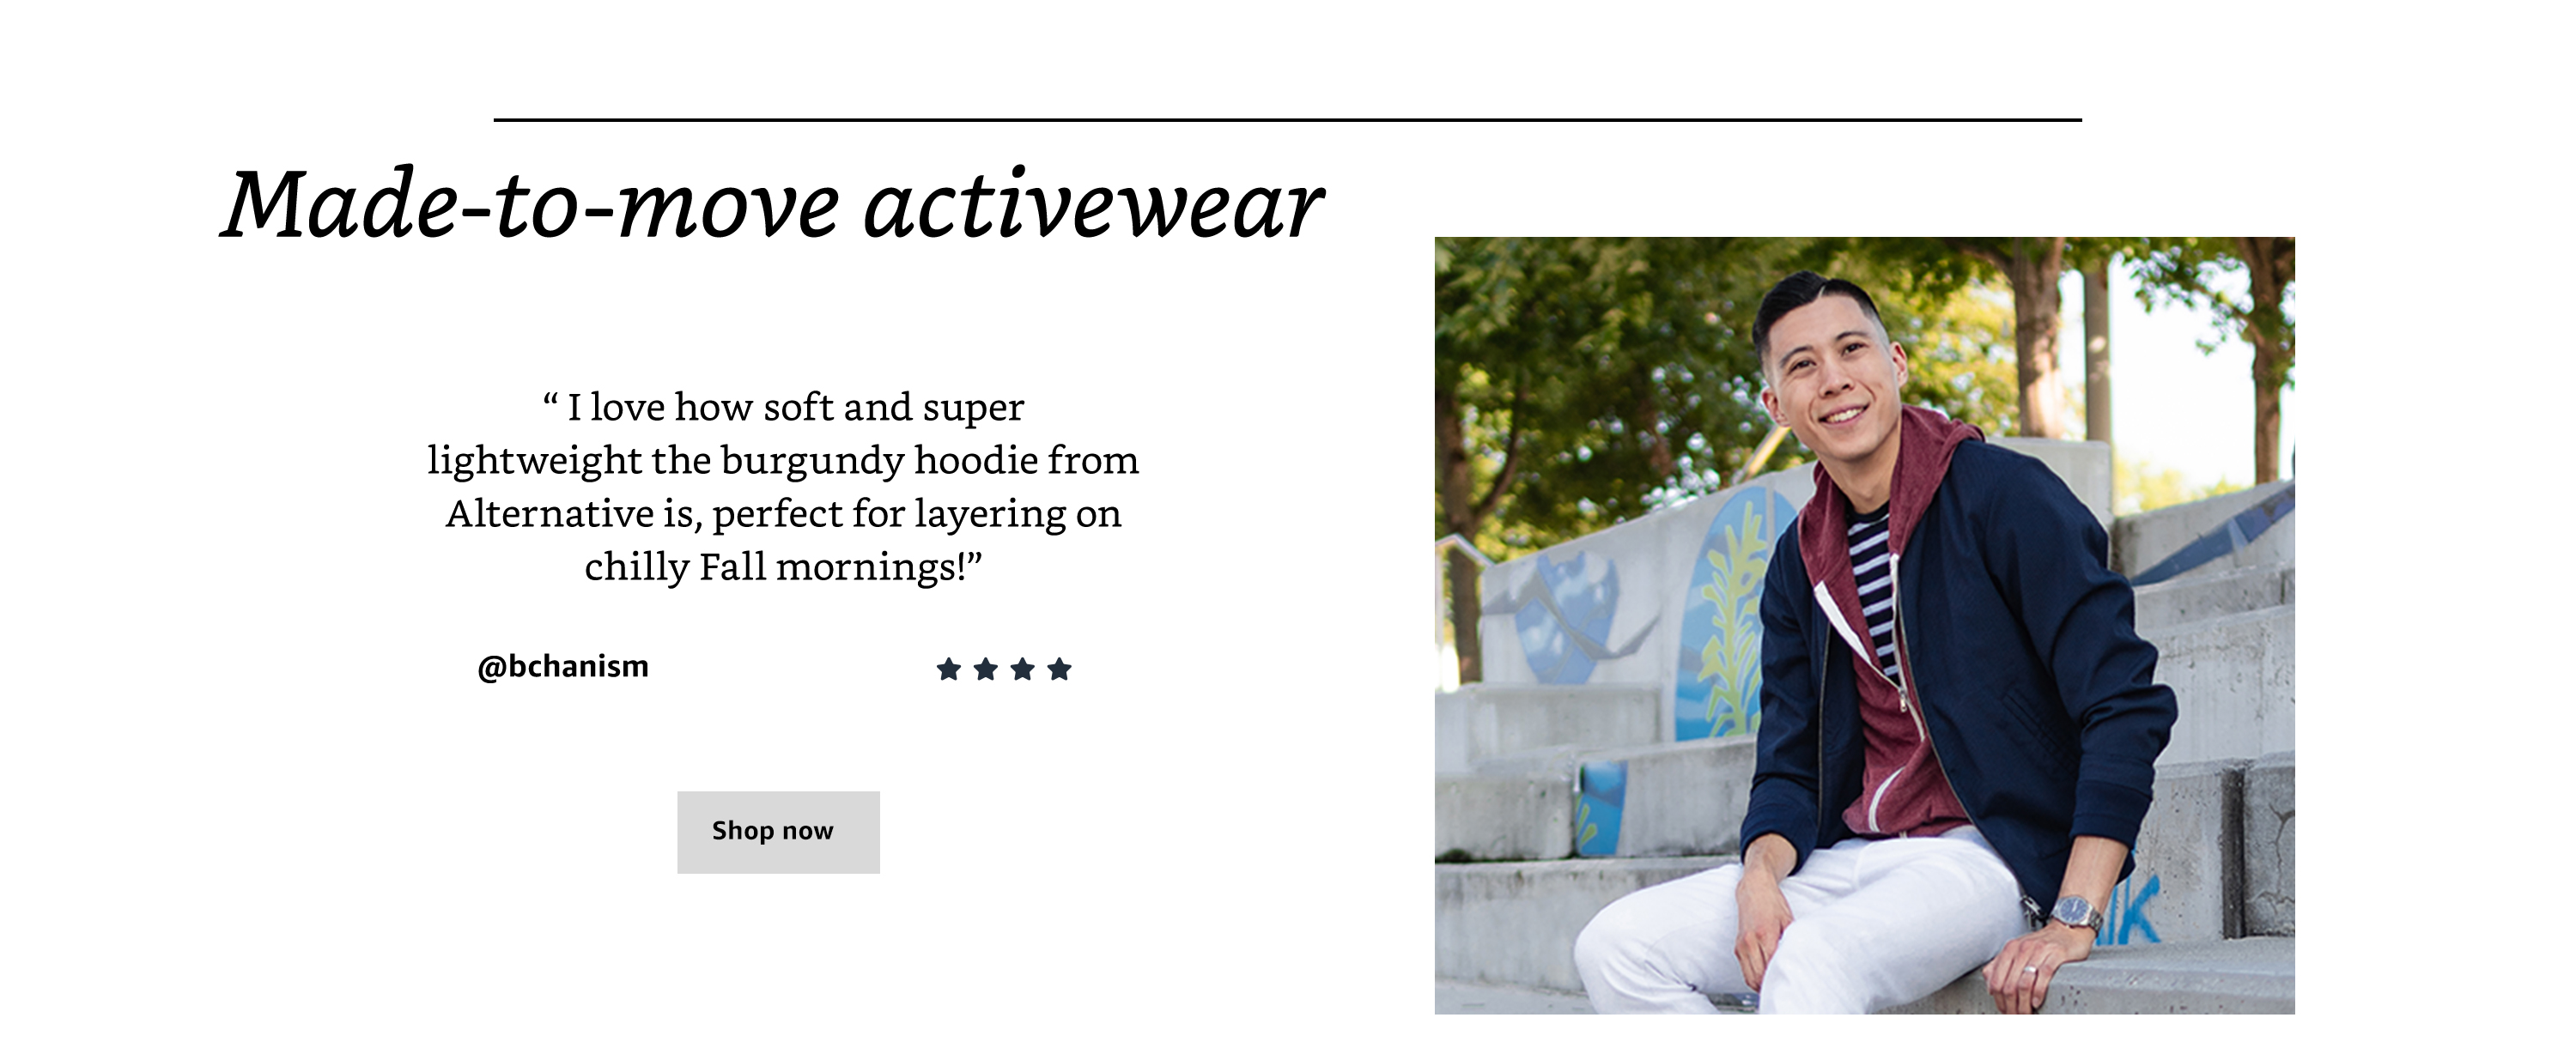 Made-to-move activewear